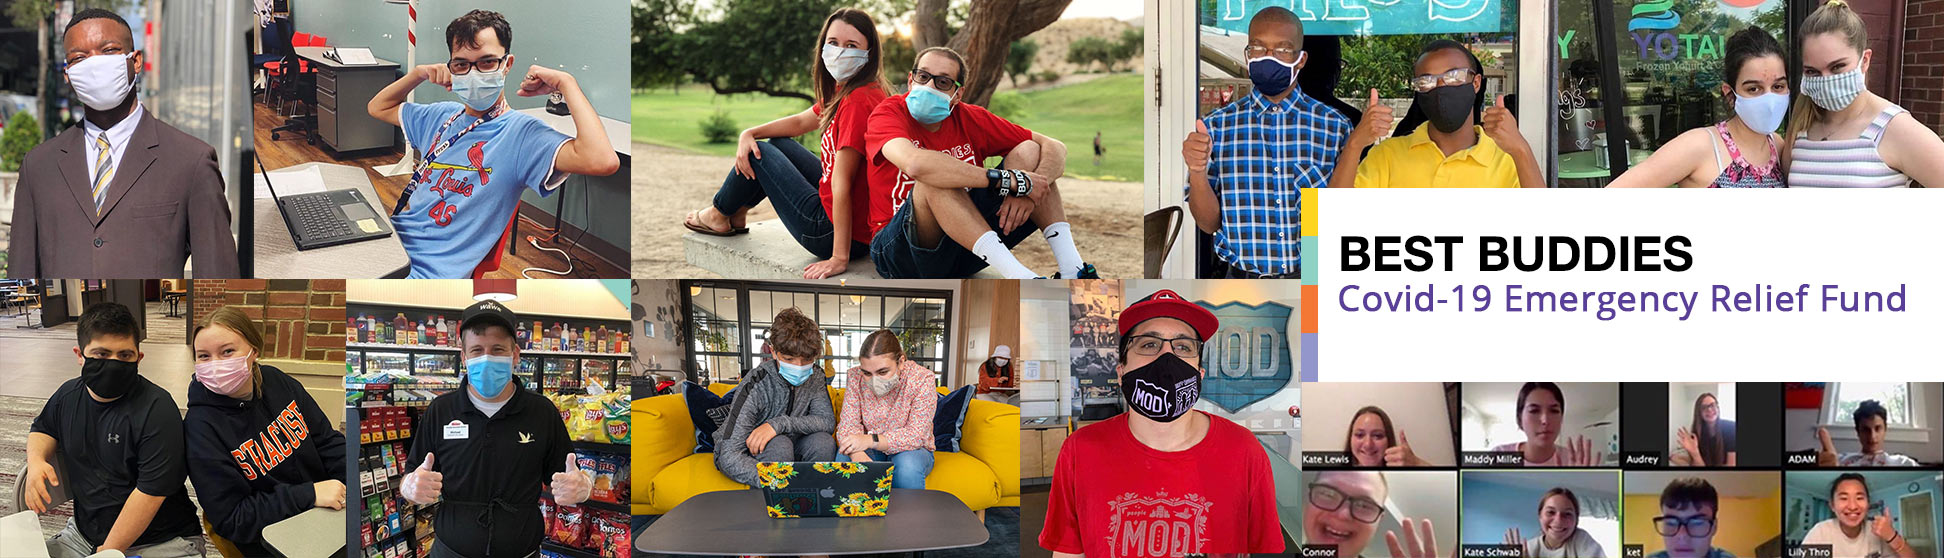 Collage of Best Buddies participants wearing masks